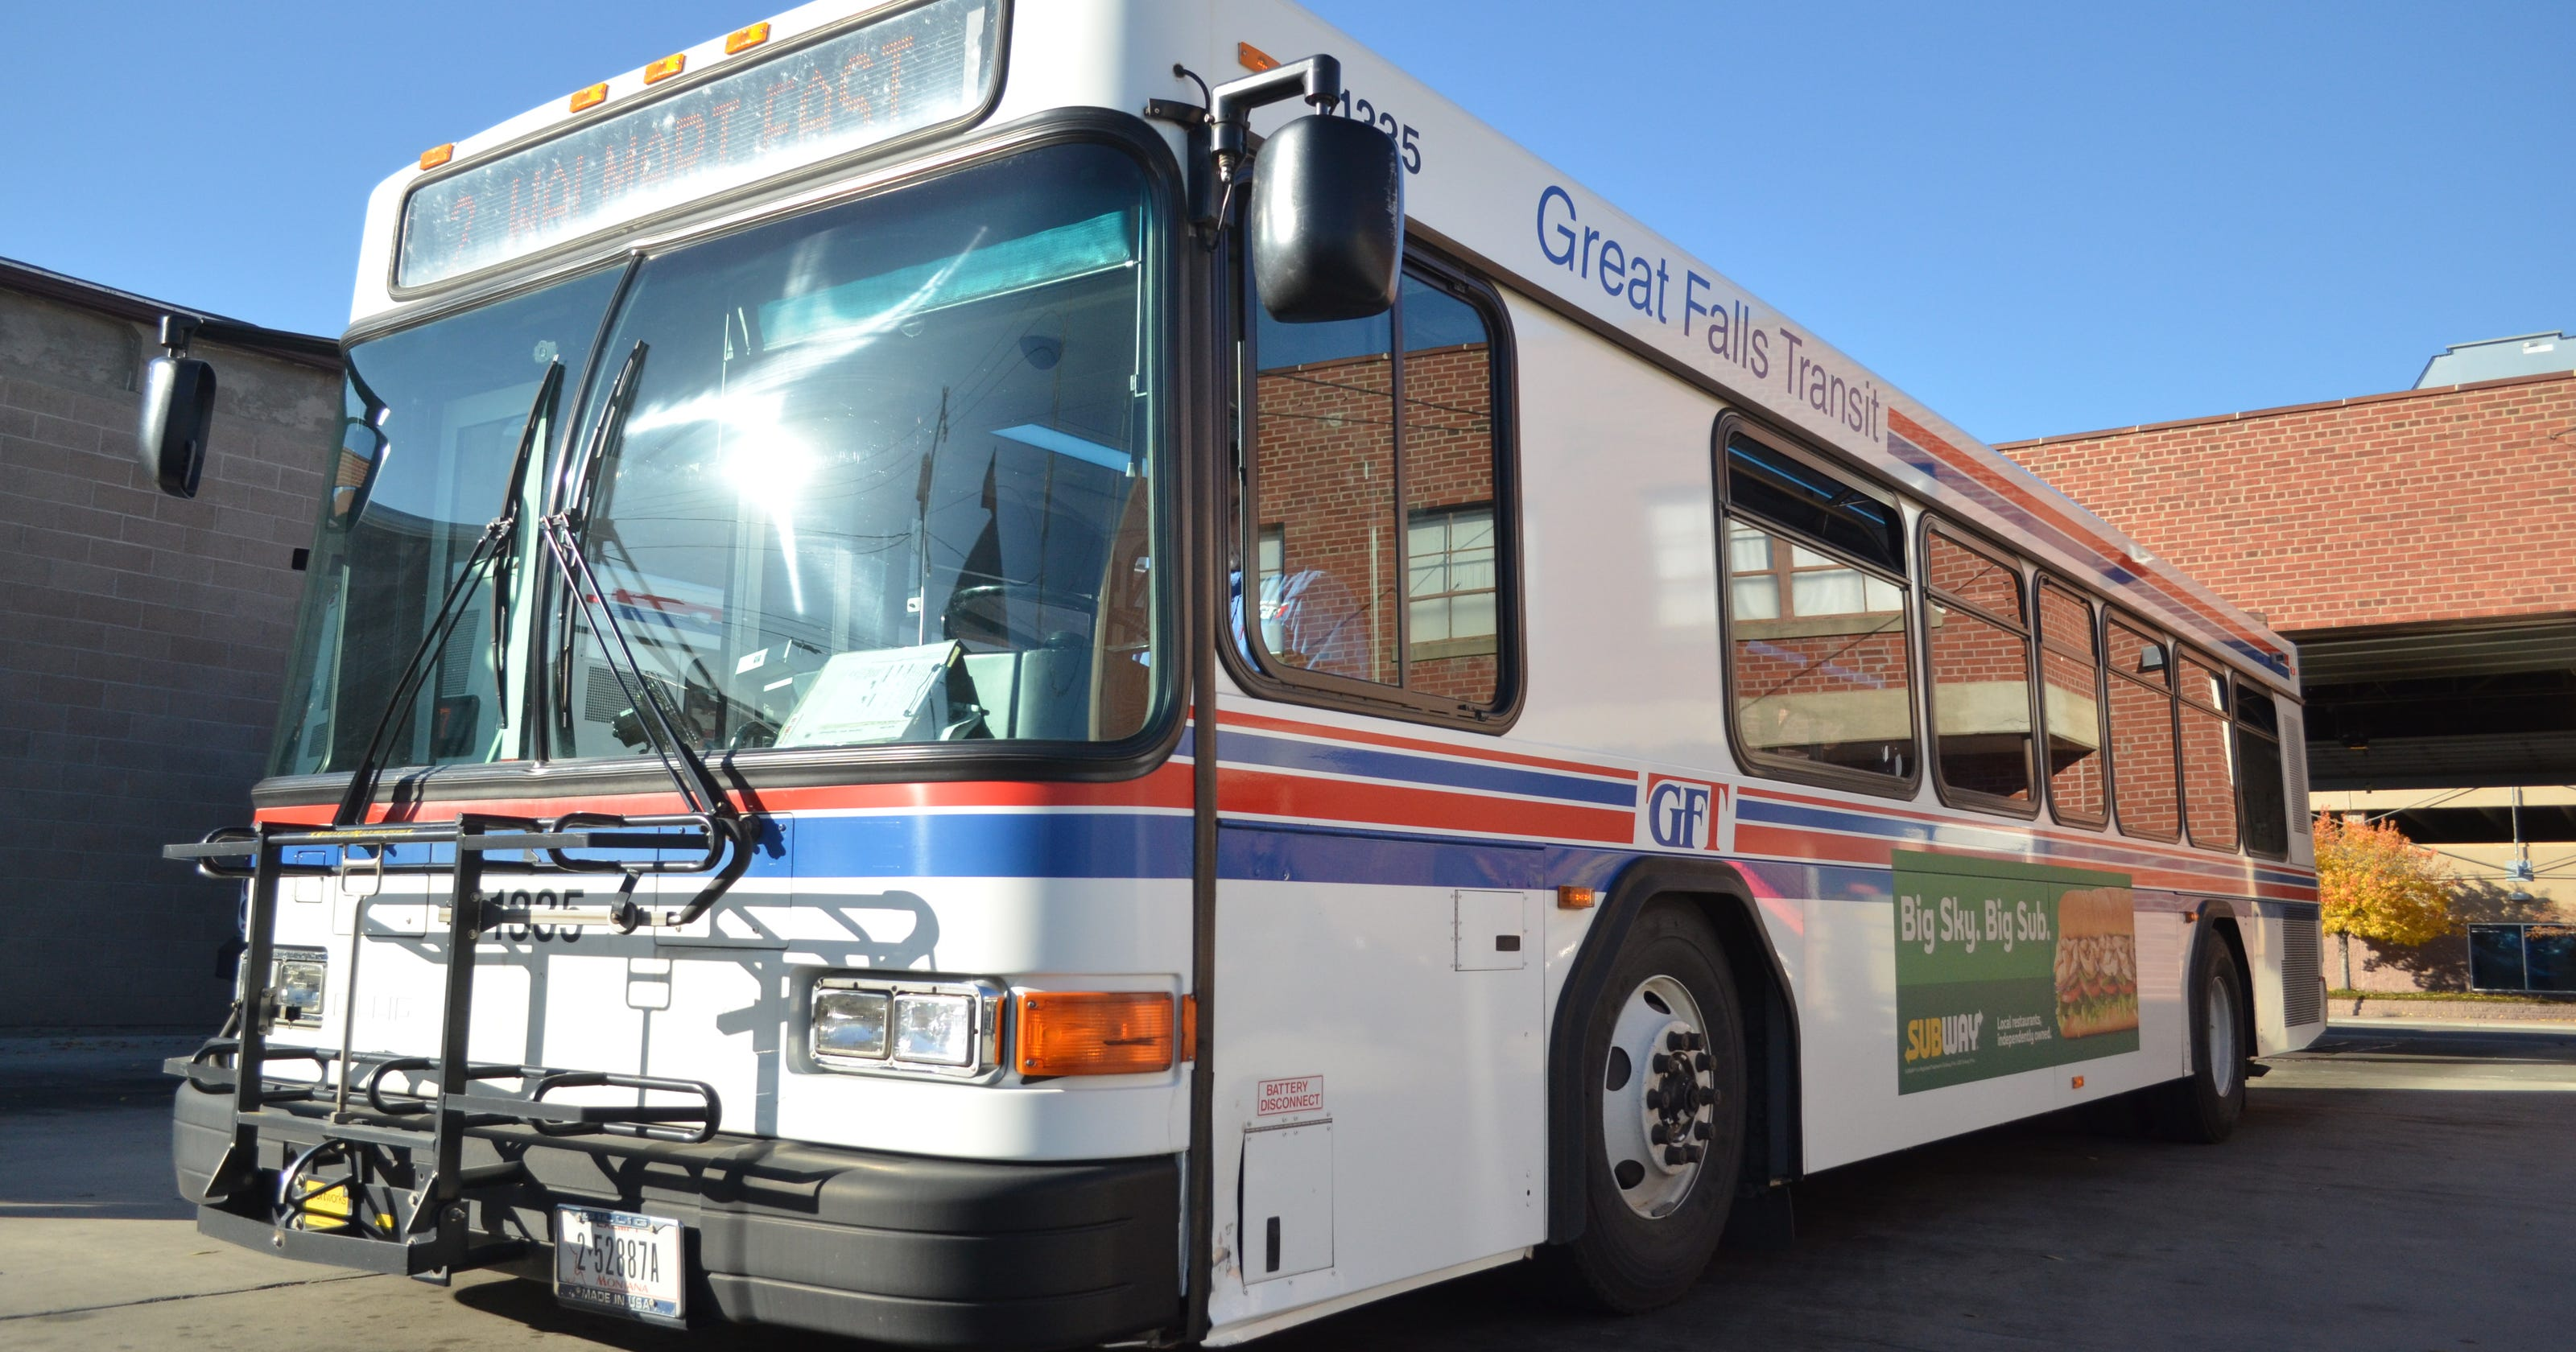 Great Falls Transit >> Veteran Free Bus Ride Program Saved By Donors